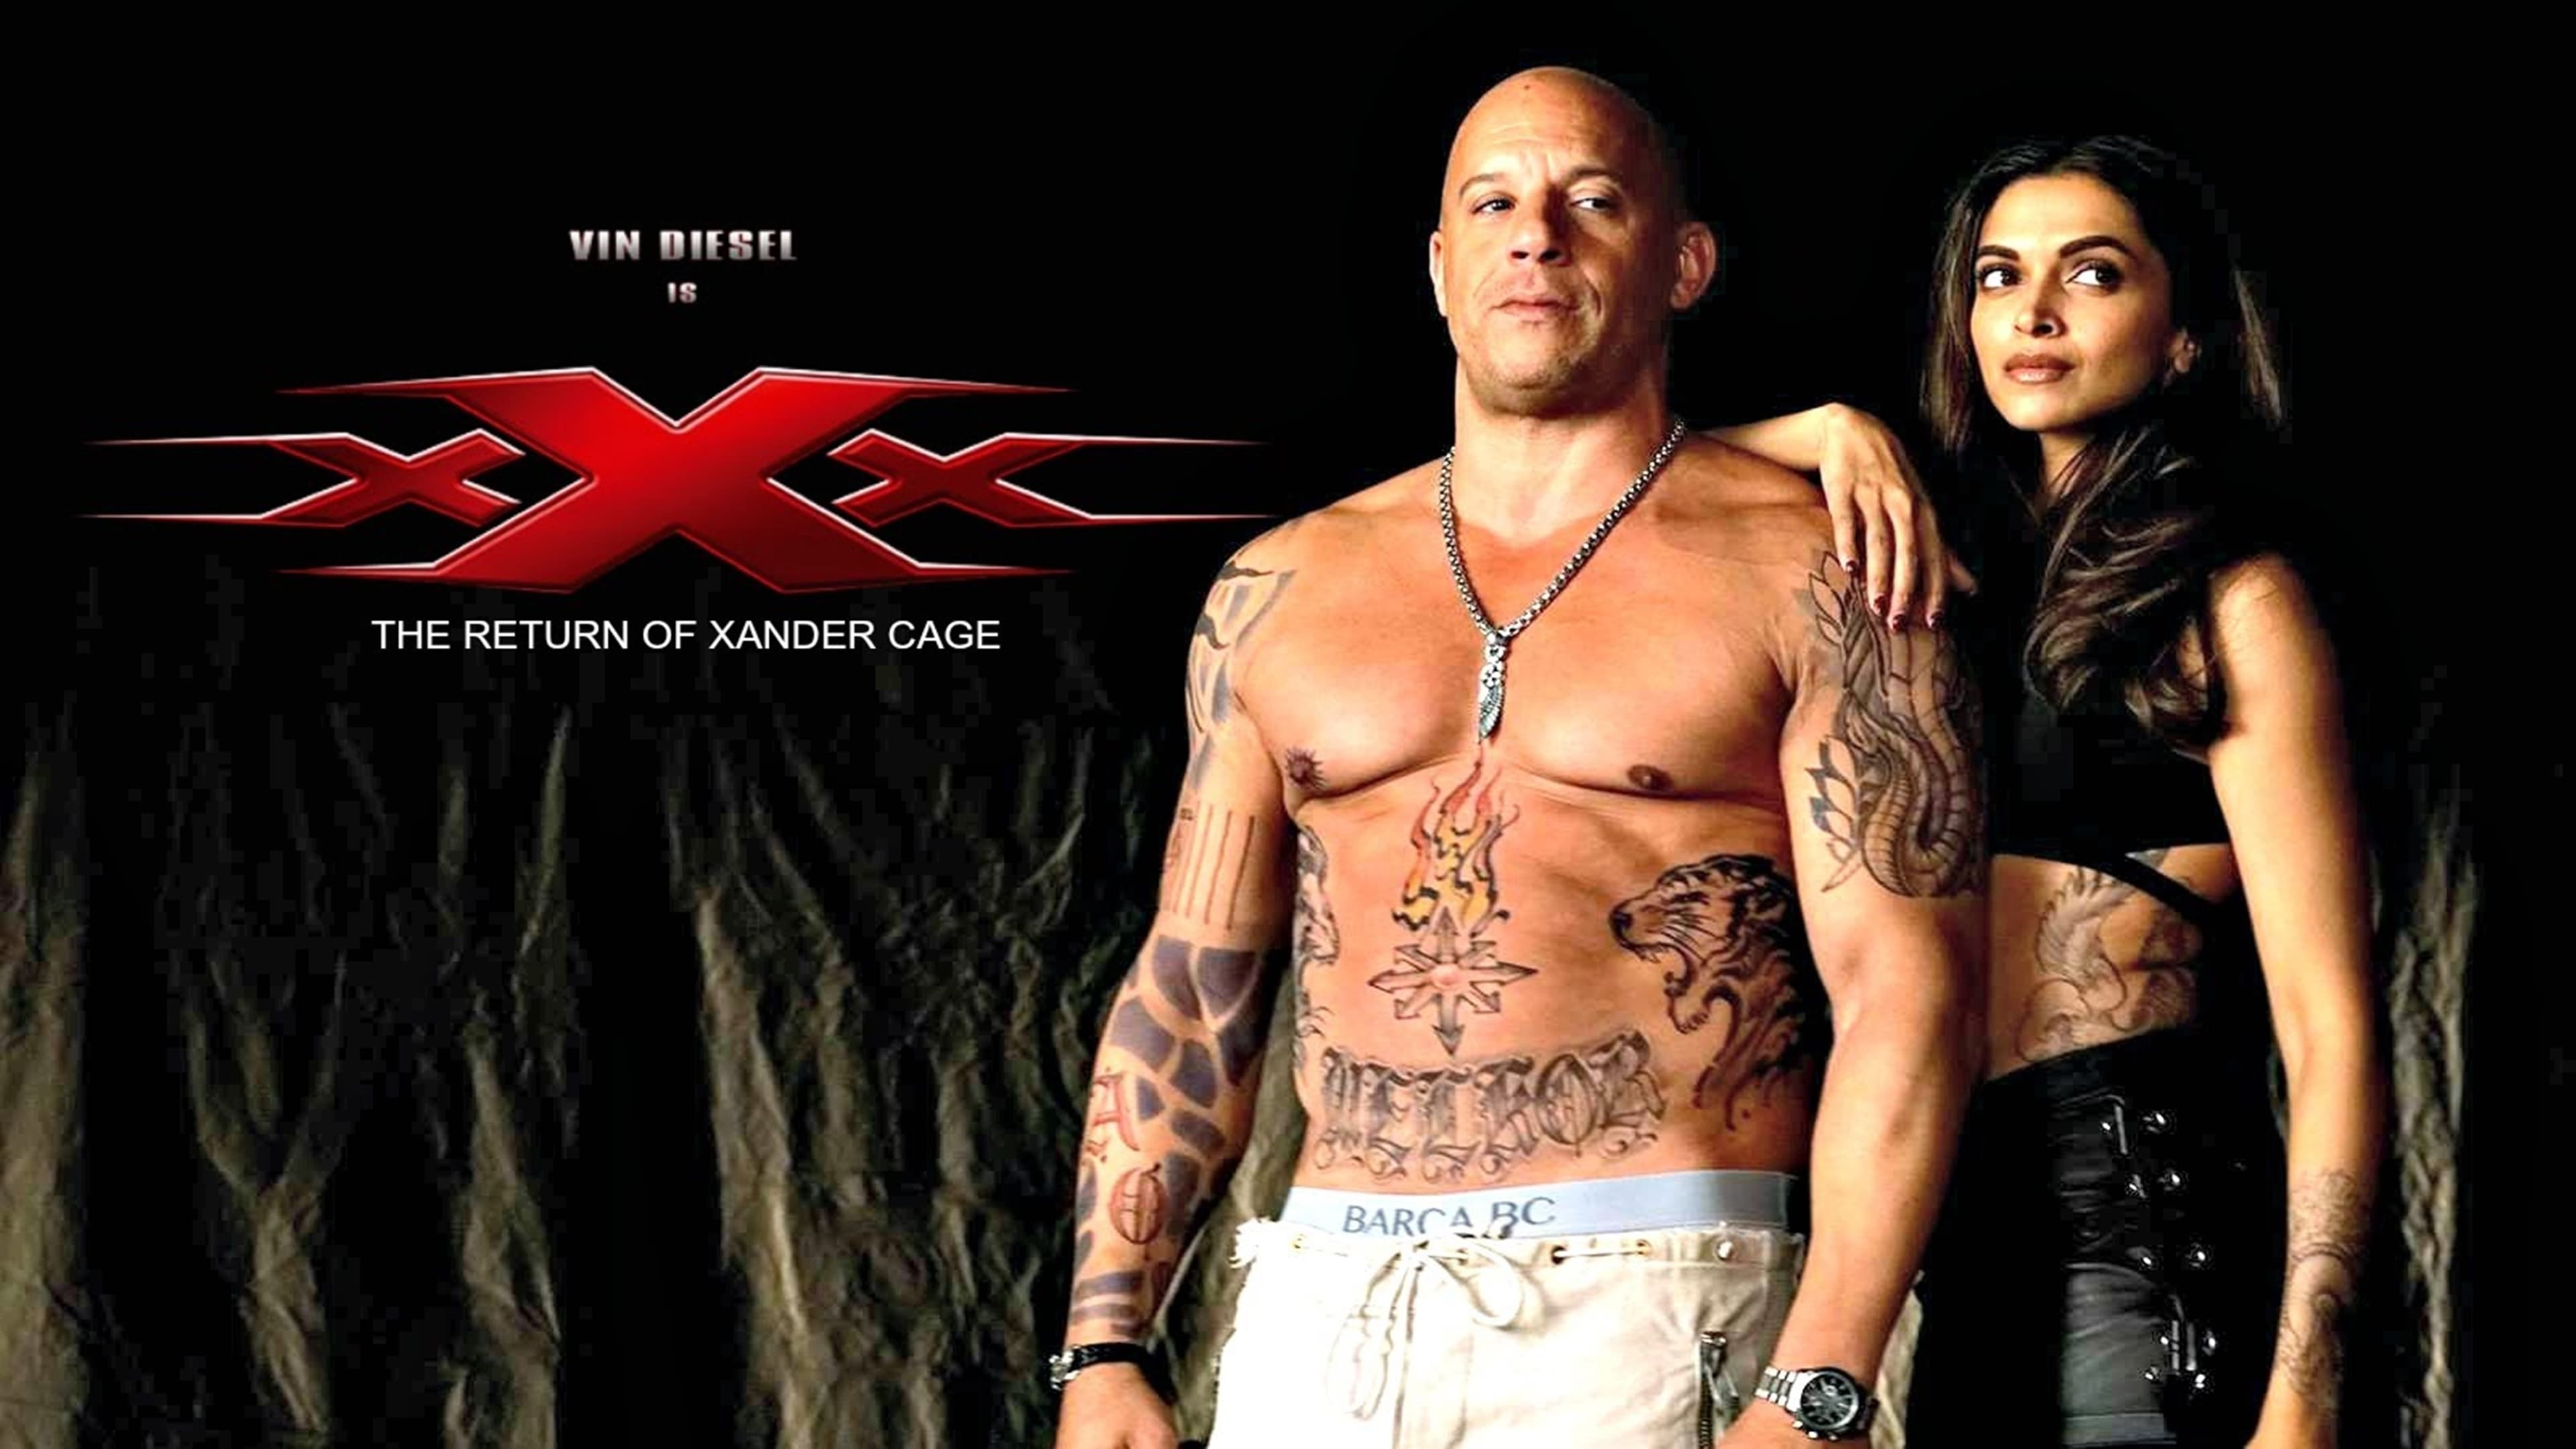 Xxx Movie Database 13